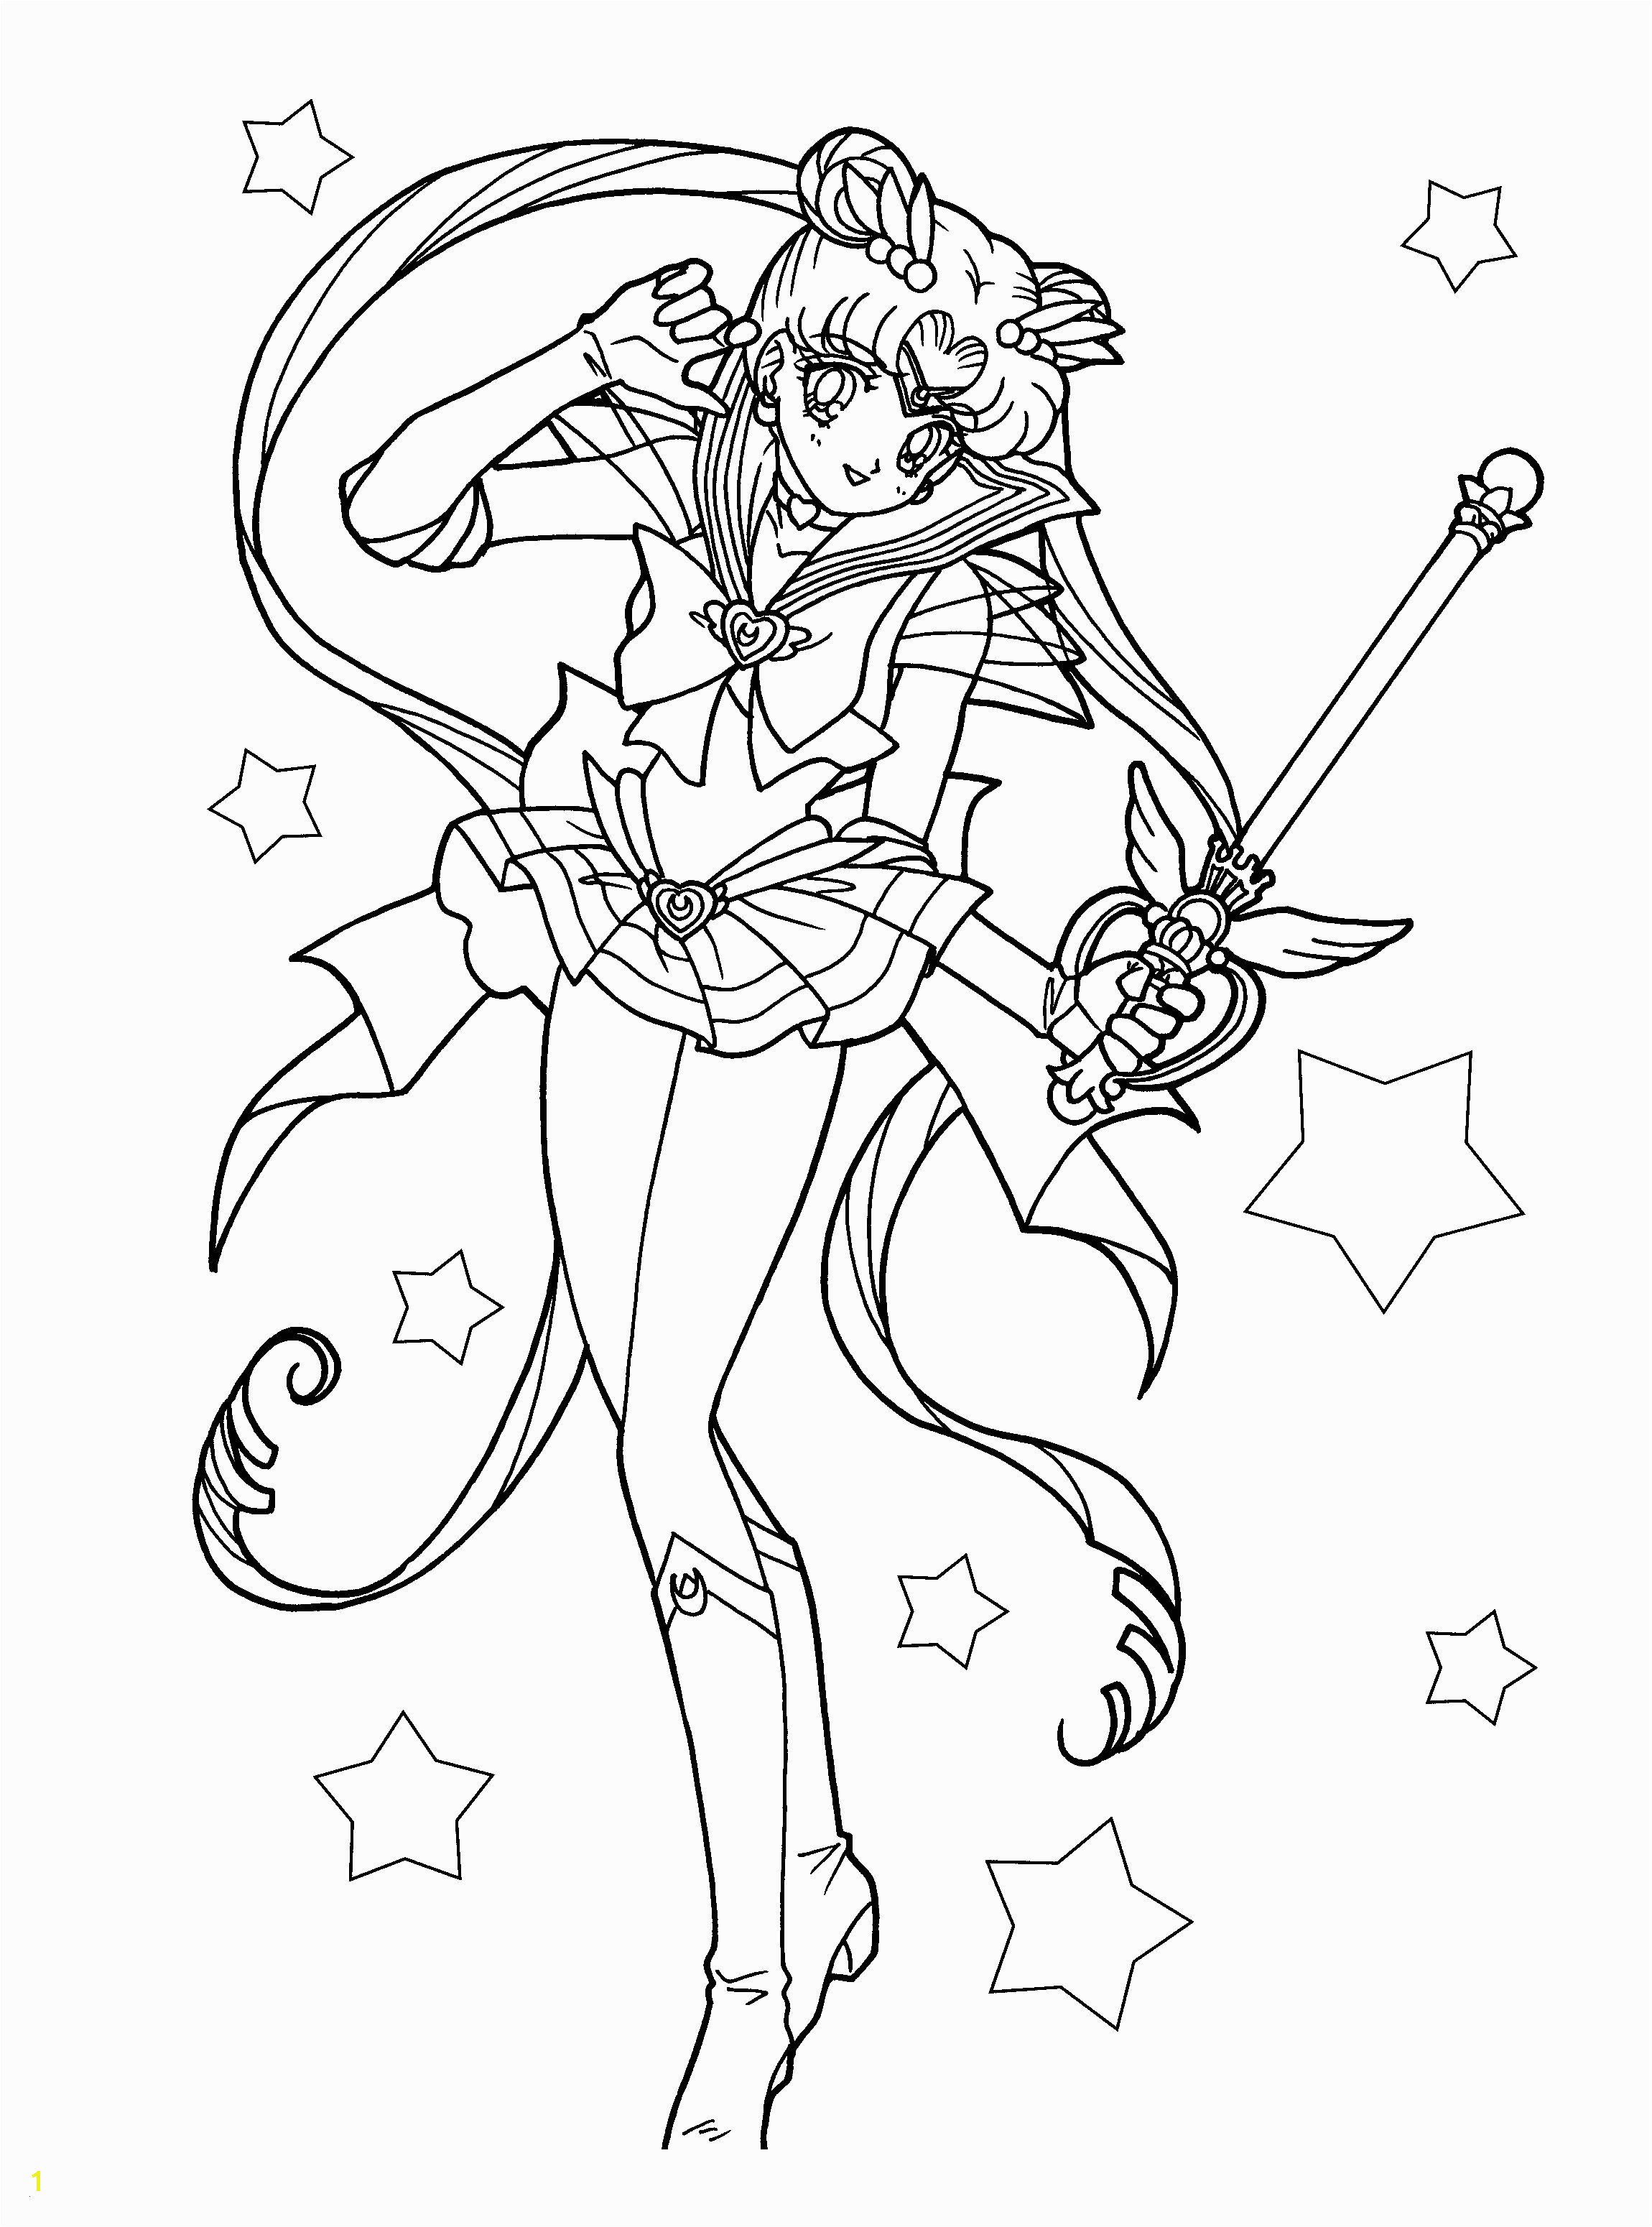 Ausmalbilder Sailor Moon Schön Sailormoon Coloring Pages Coloring Pages Pinterest Best Sailor